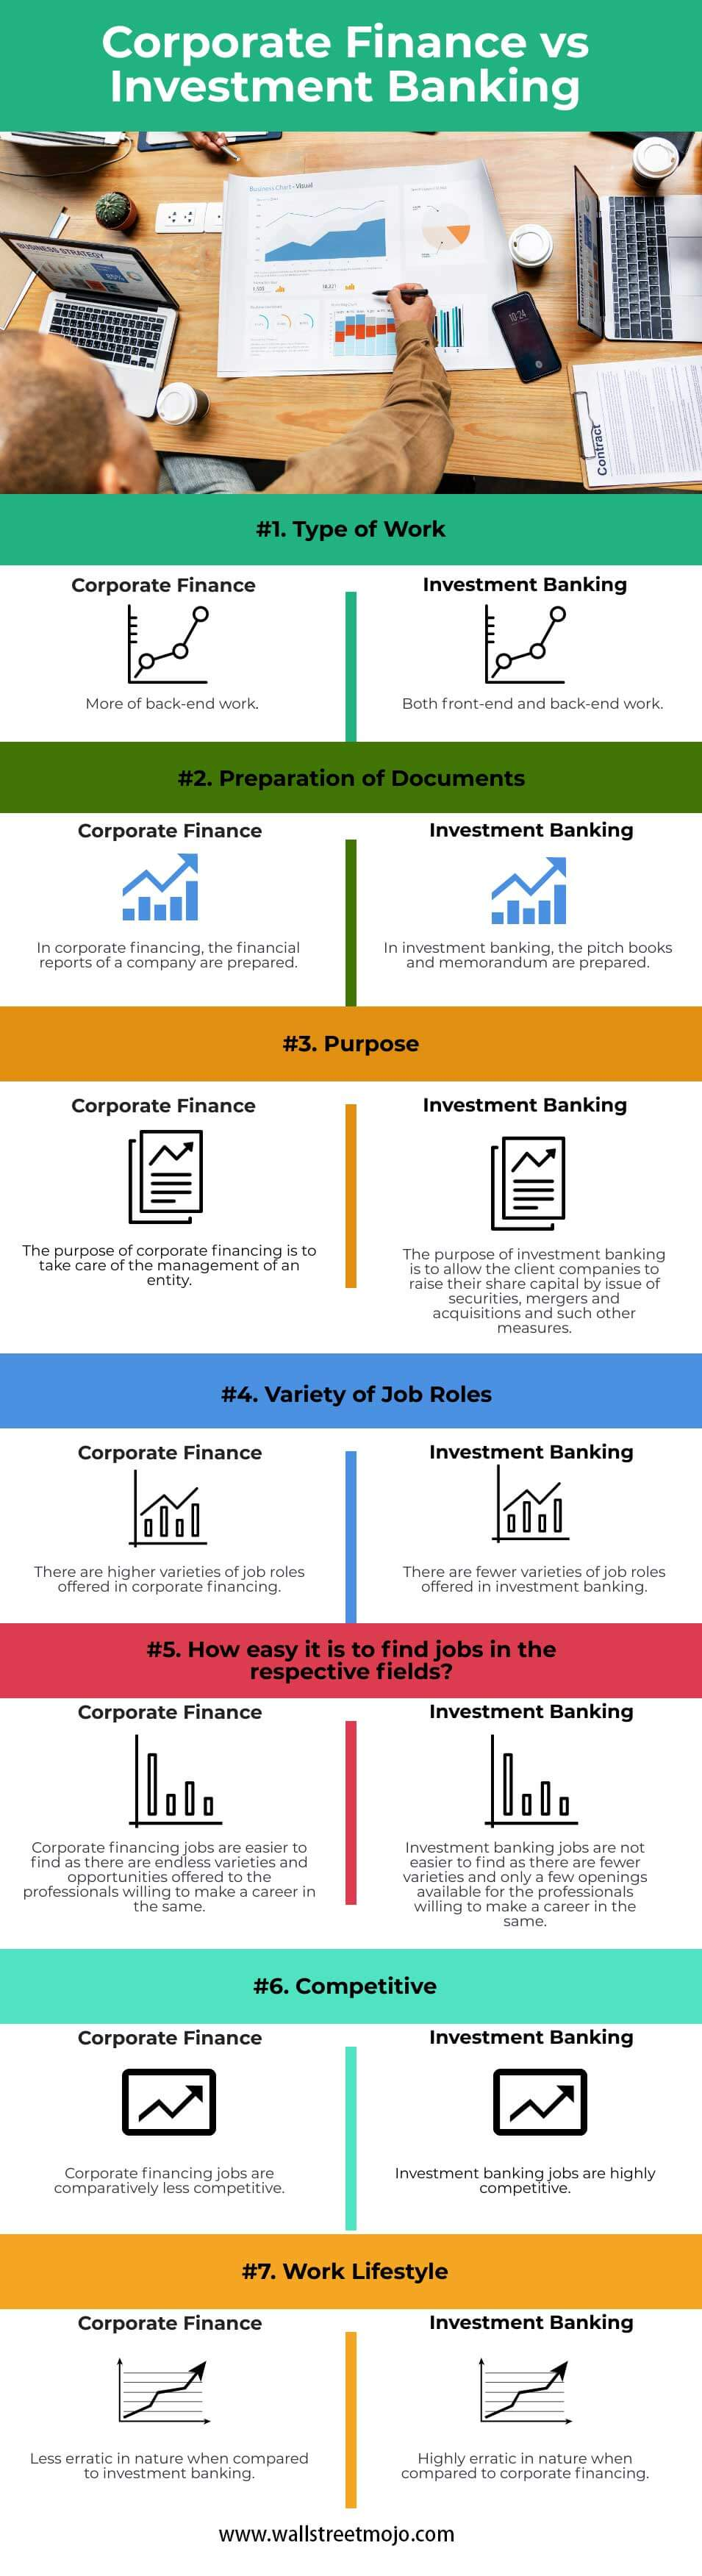 Corporate-Finance-vs-Investment-Banking-info